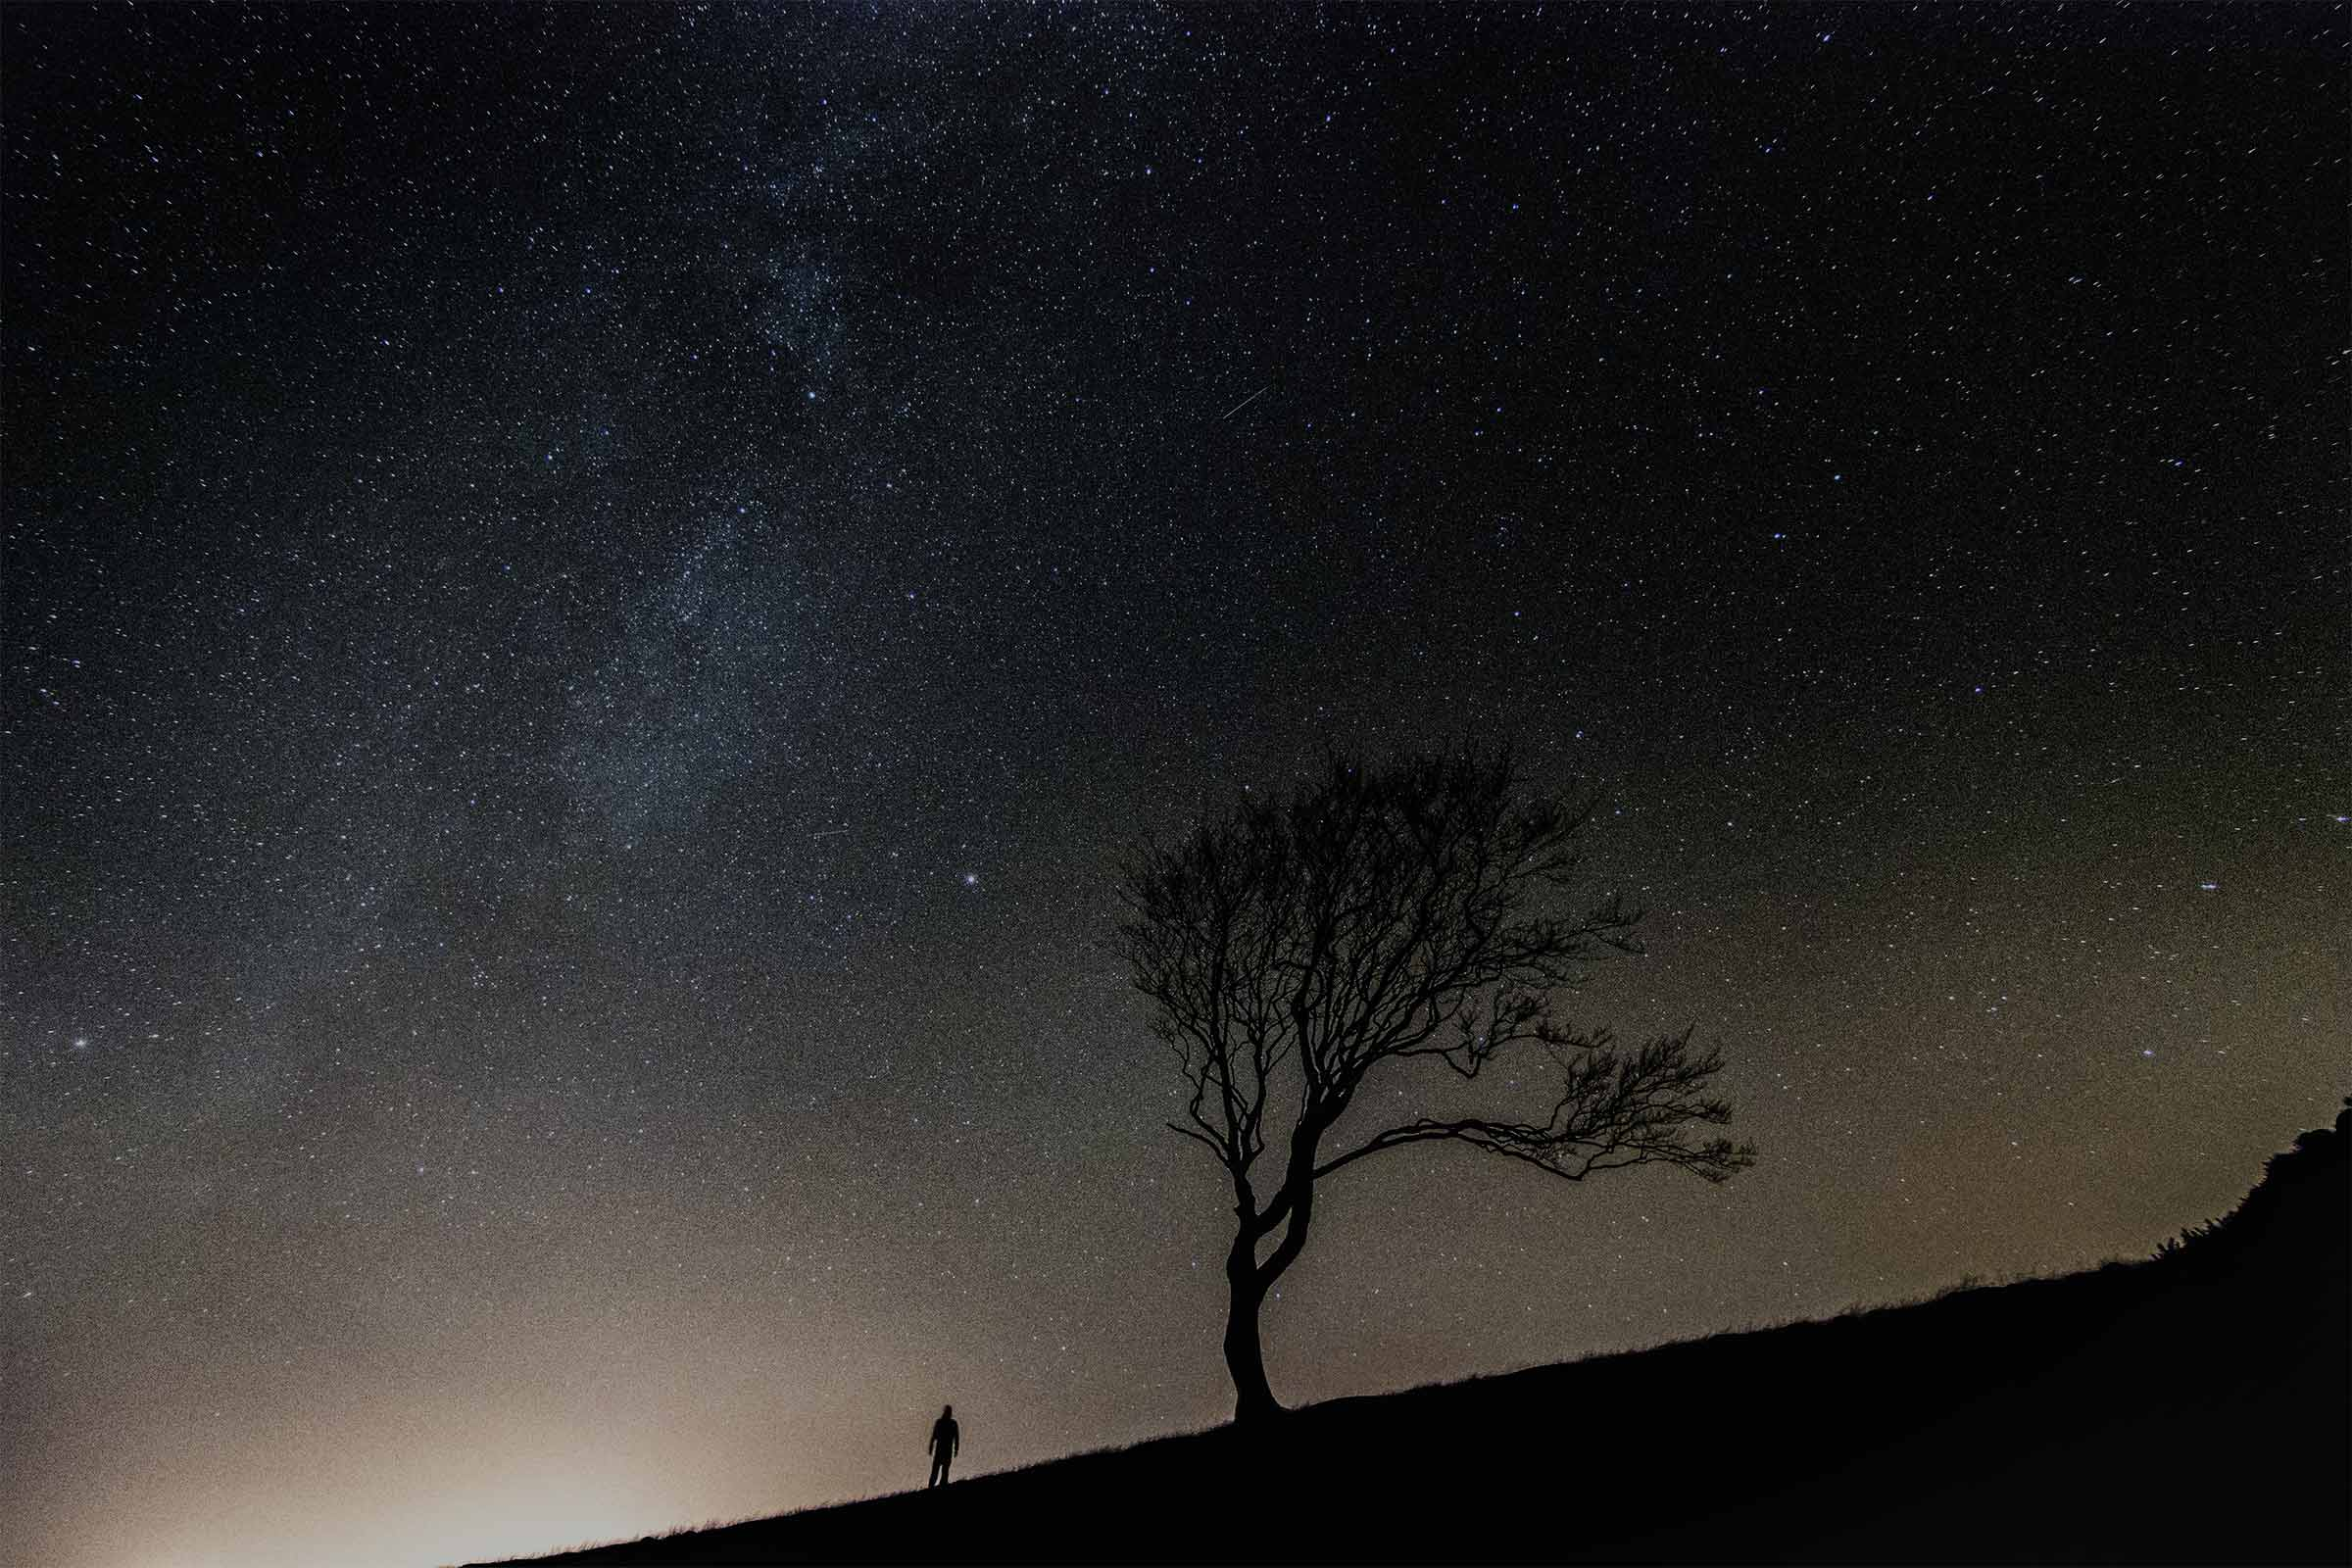 Tree on a hill on a starry night